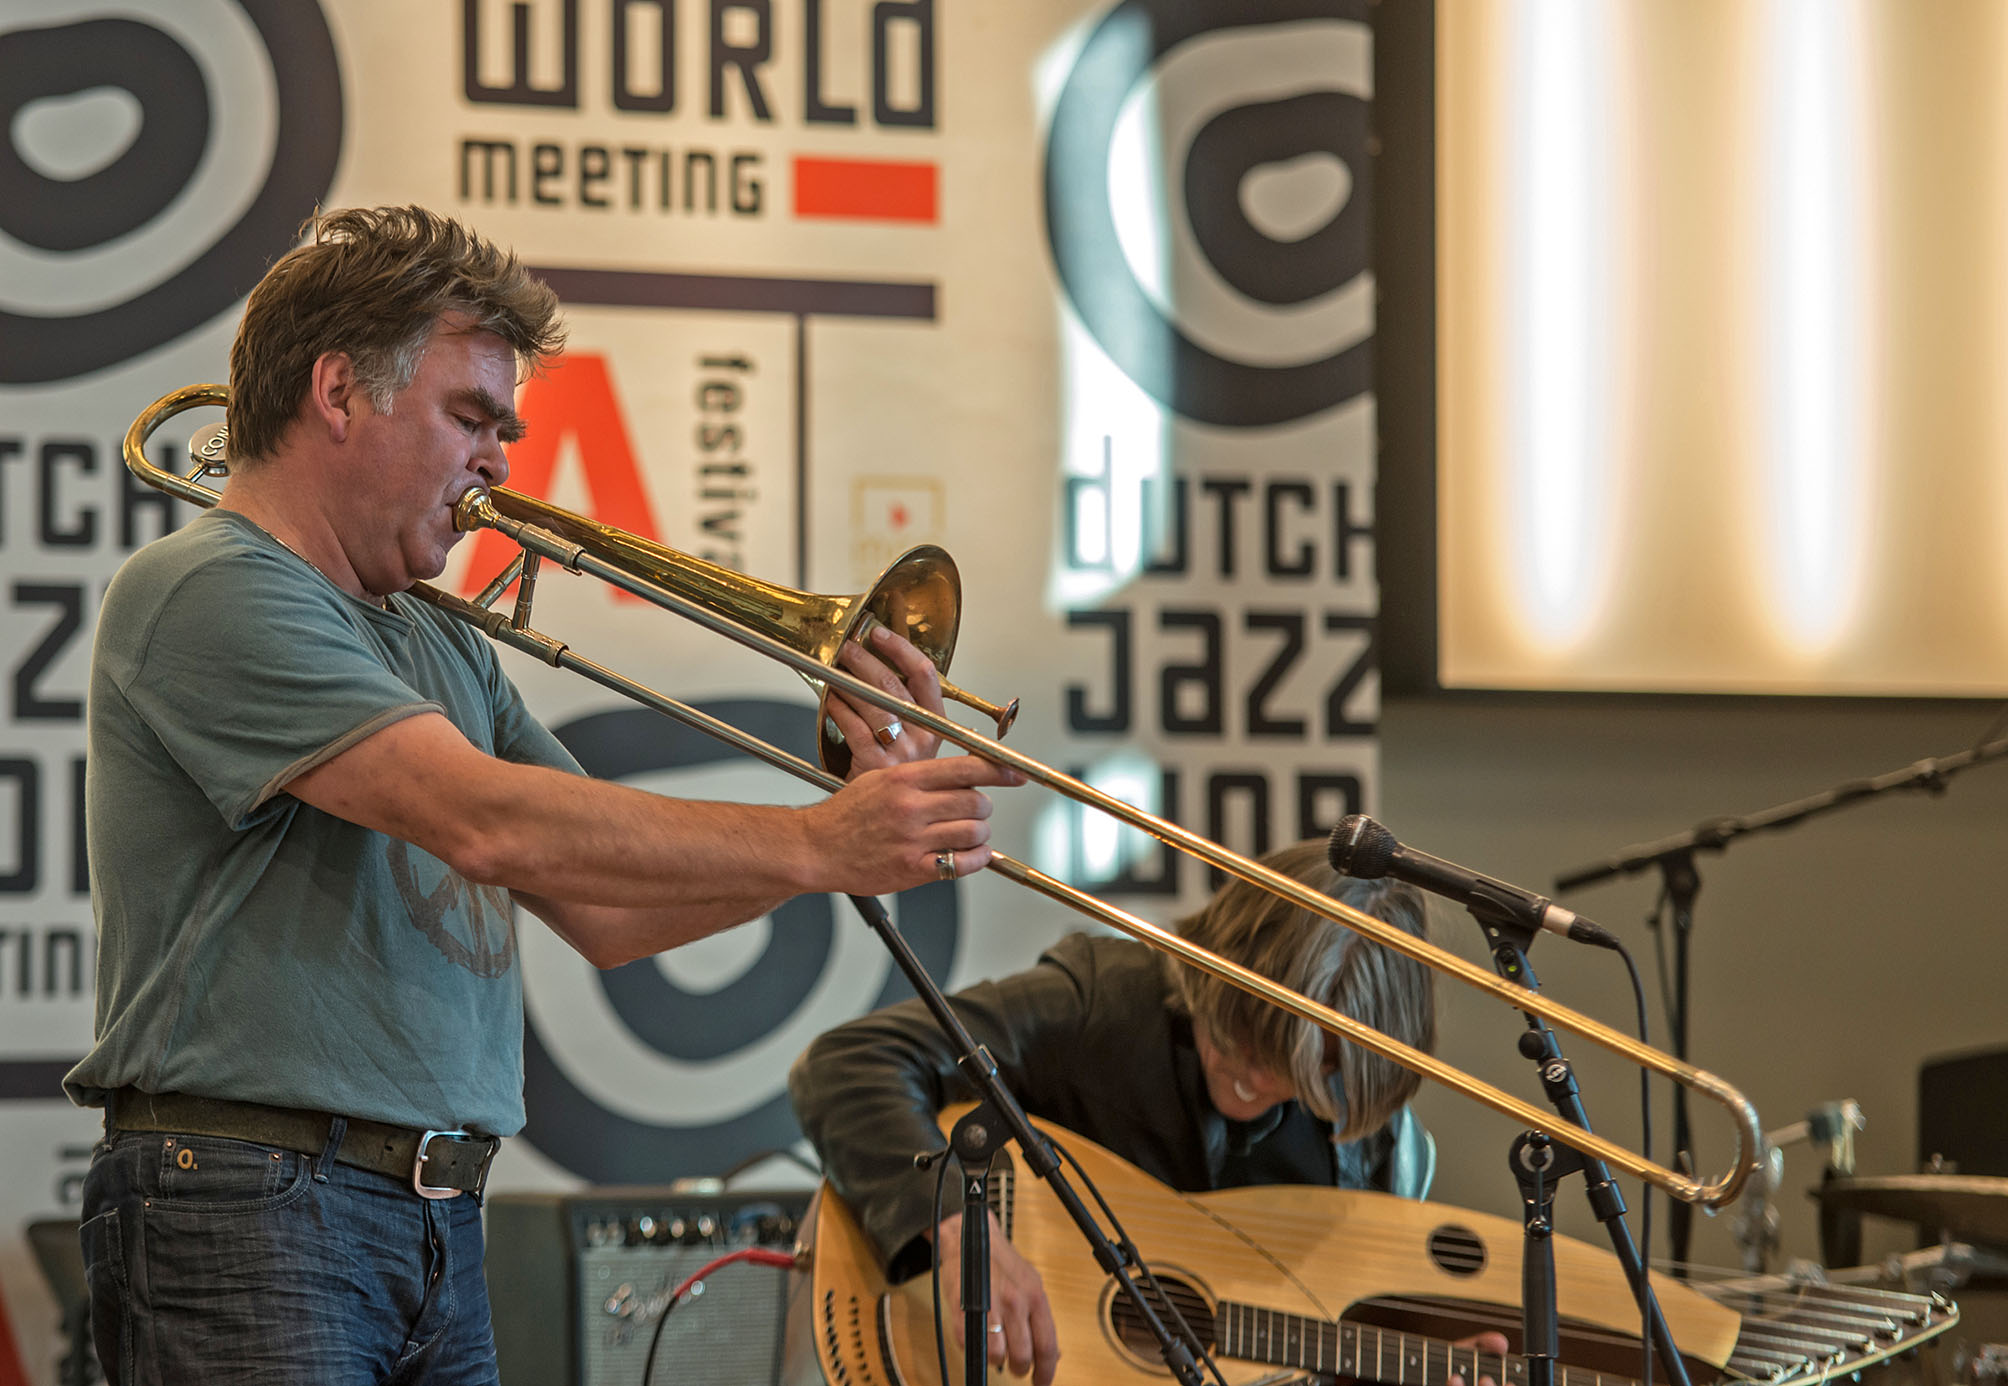 Boi Akih at Dutch Jazz & World Meeting 2012